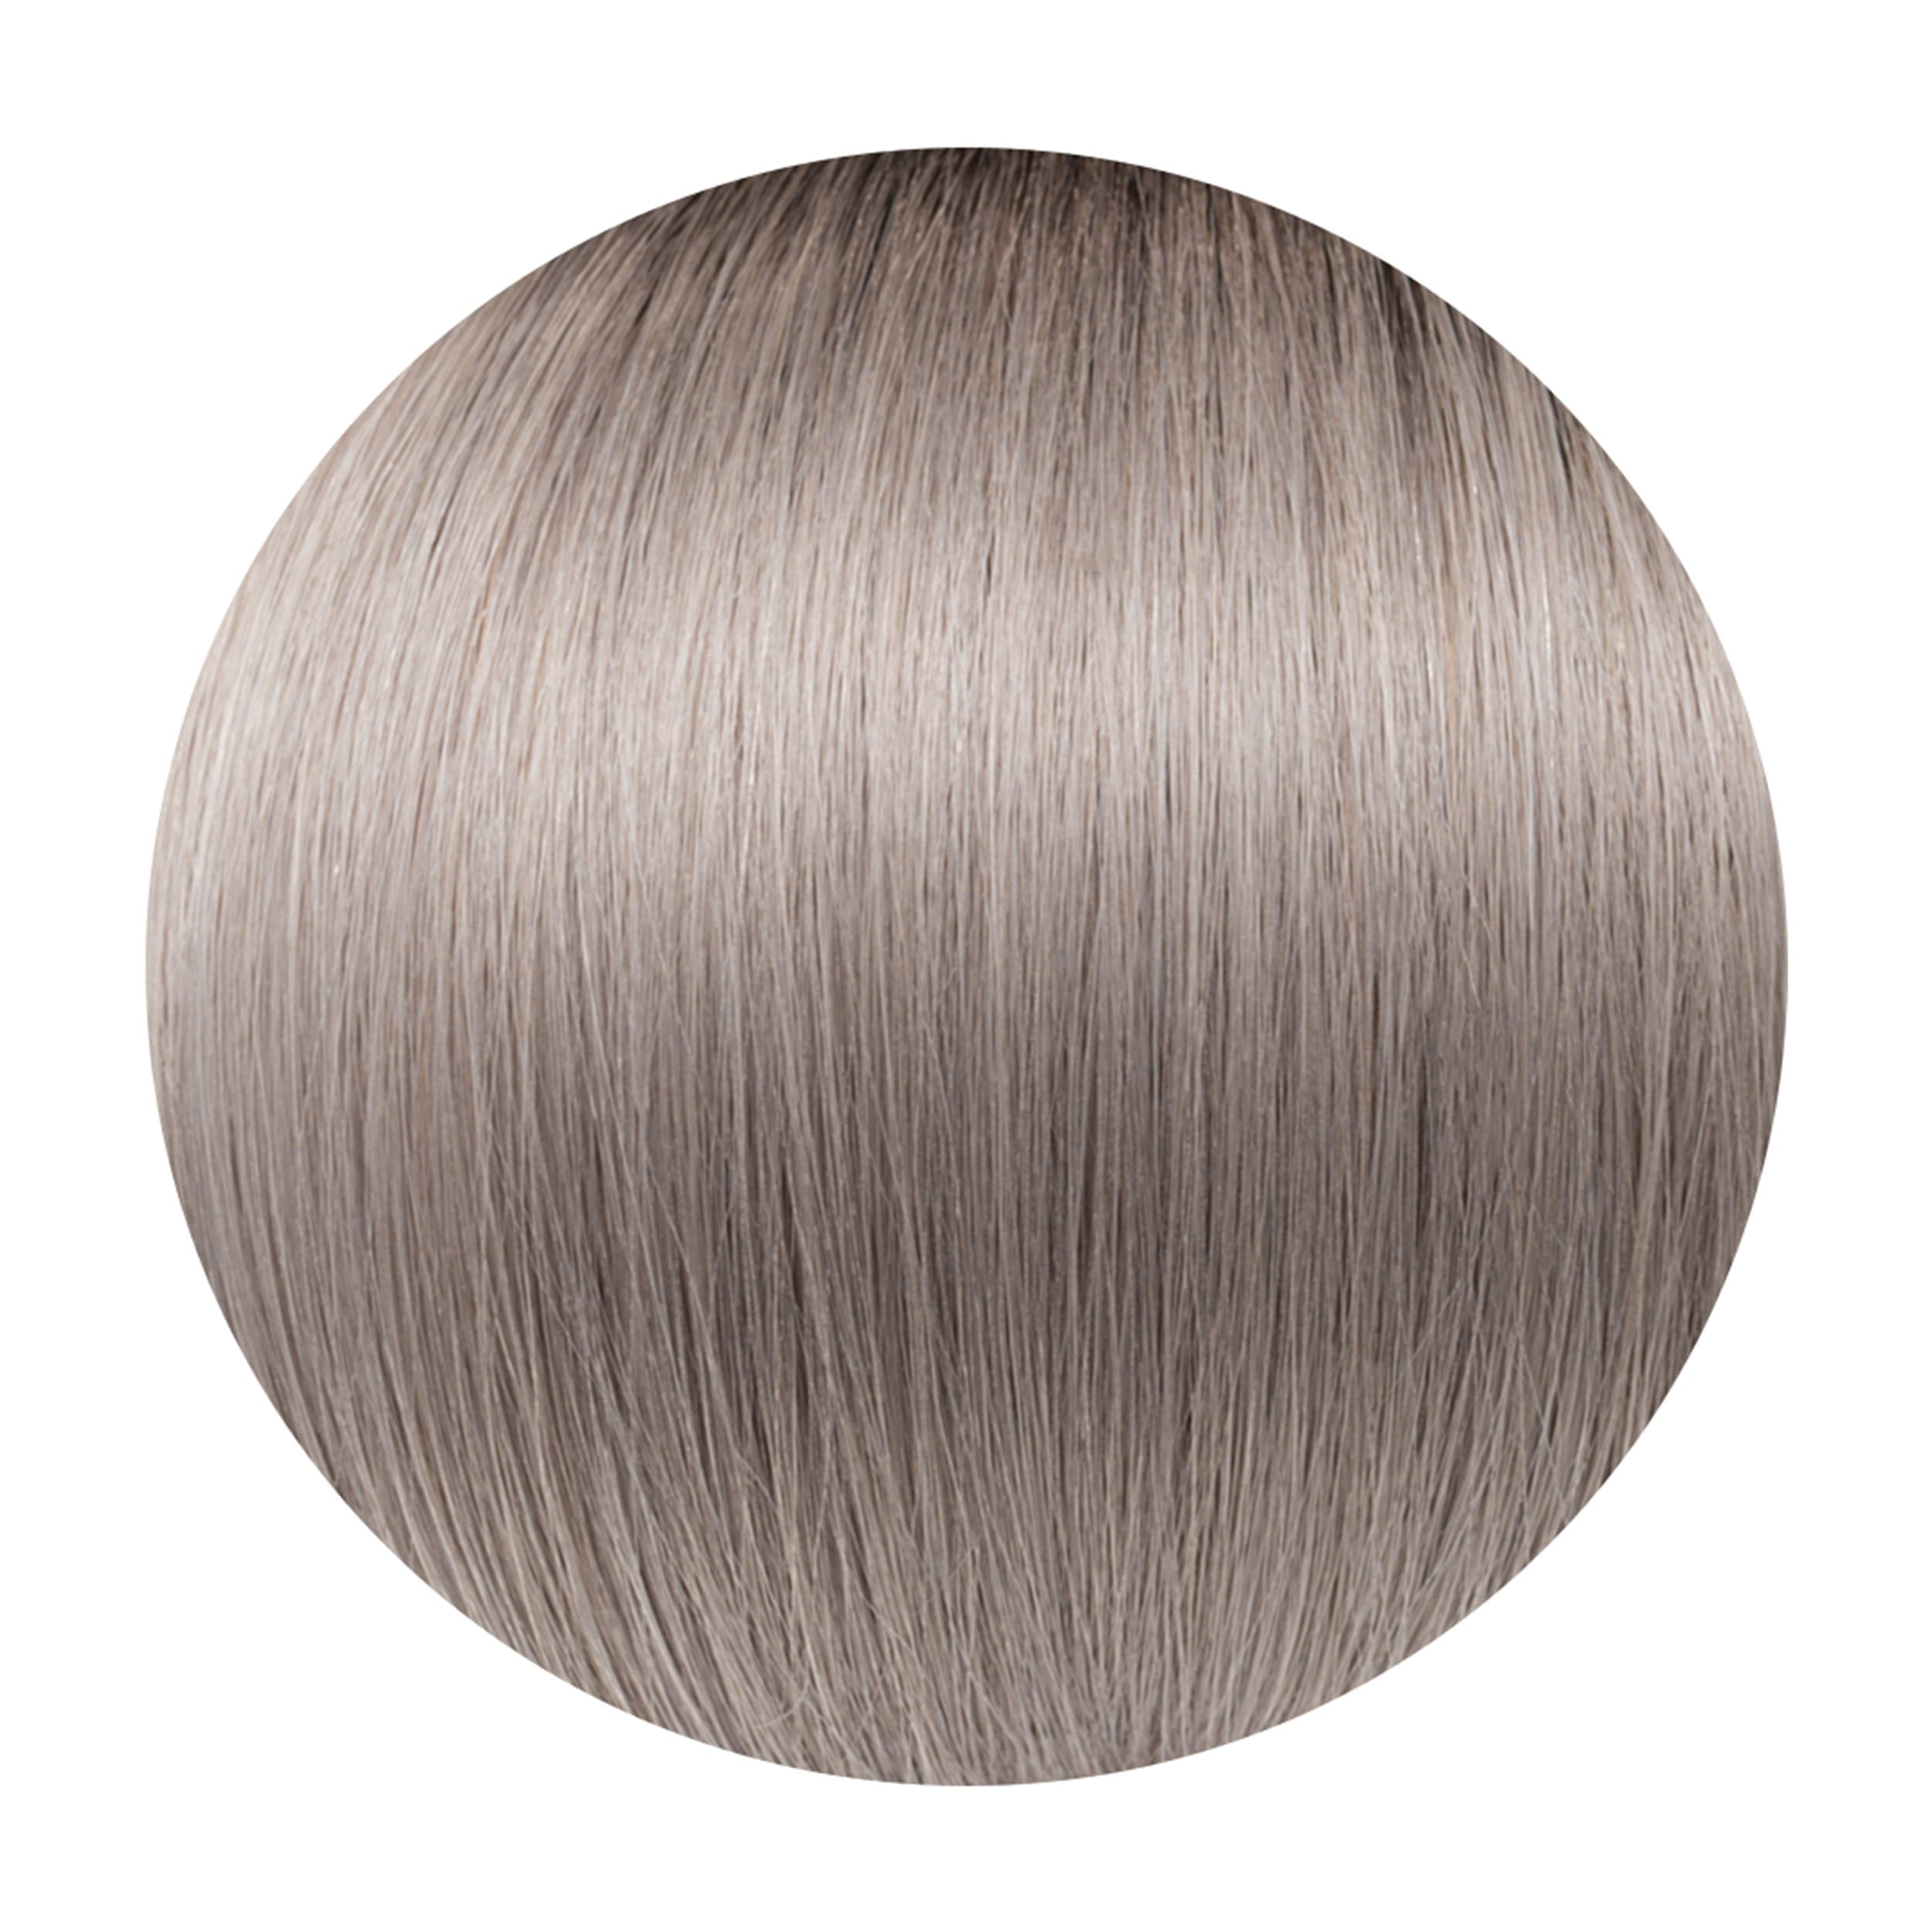 Salt n Pepper Balayage Colour Human Hair Extensions Clip in 1 Piece